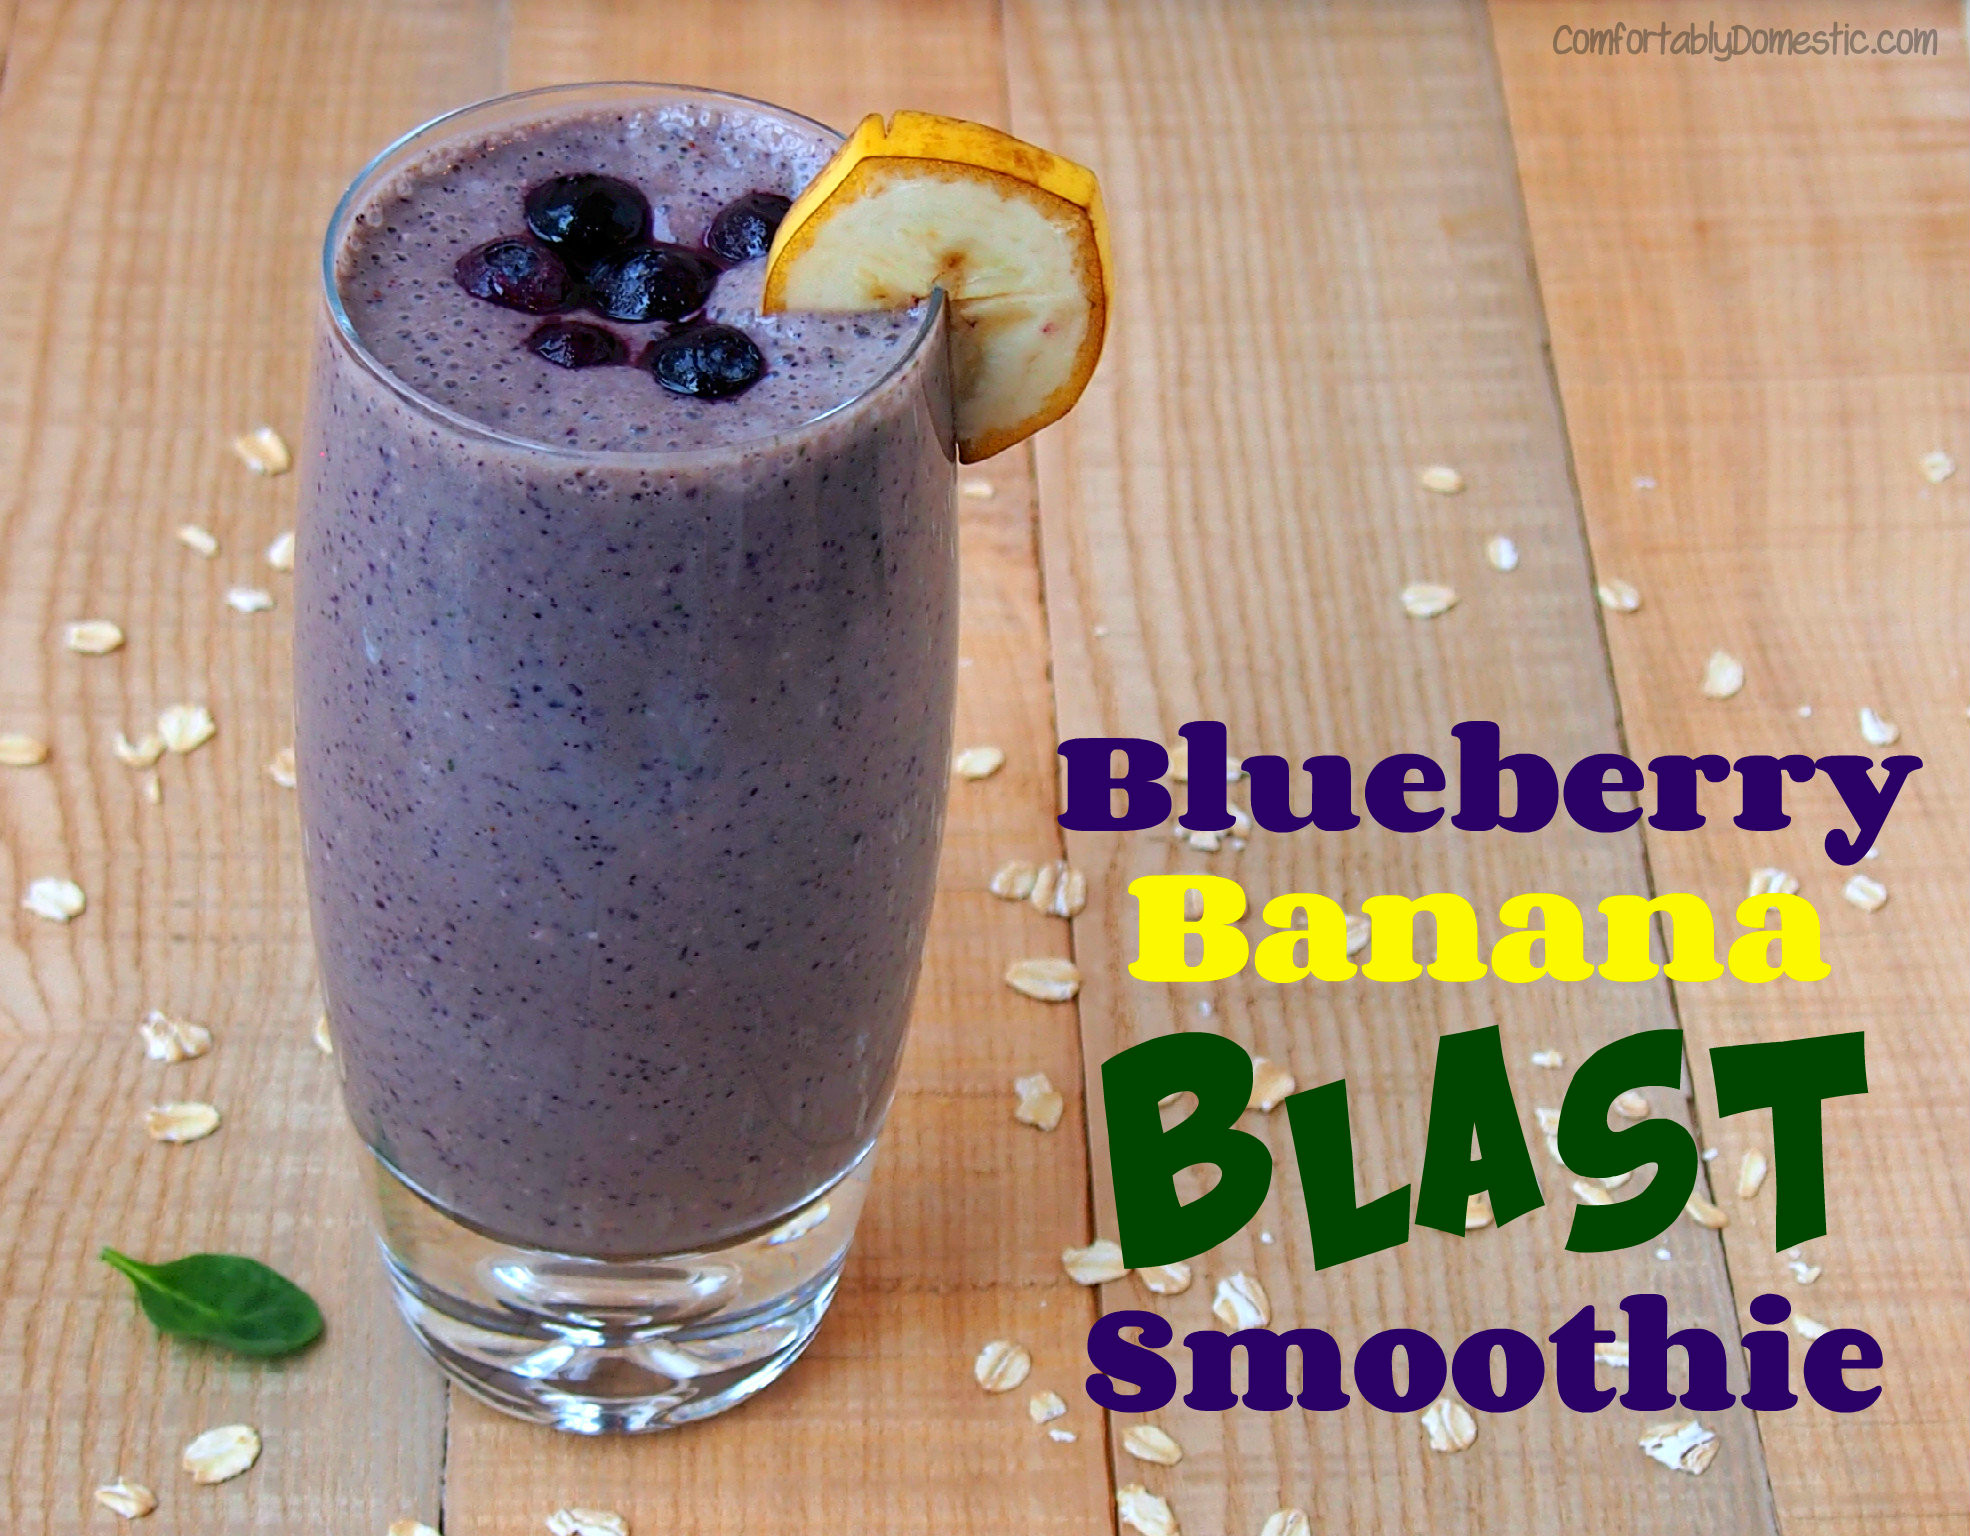 Healthy Recipes} Blueberry Banana Blast Smoothies | Comfortably ...